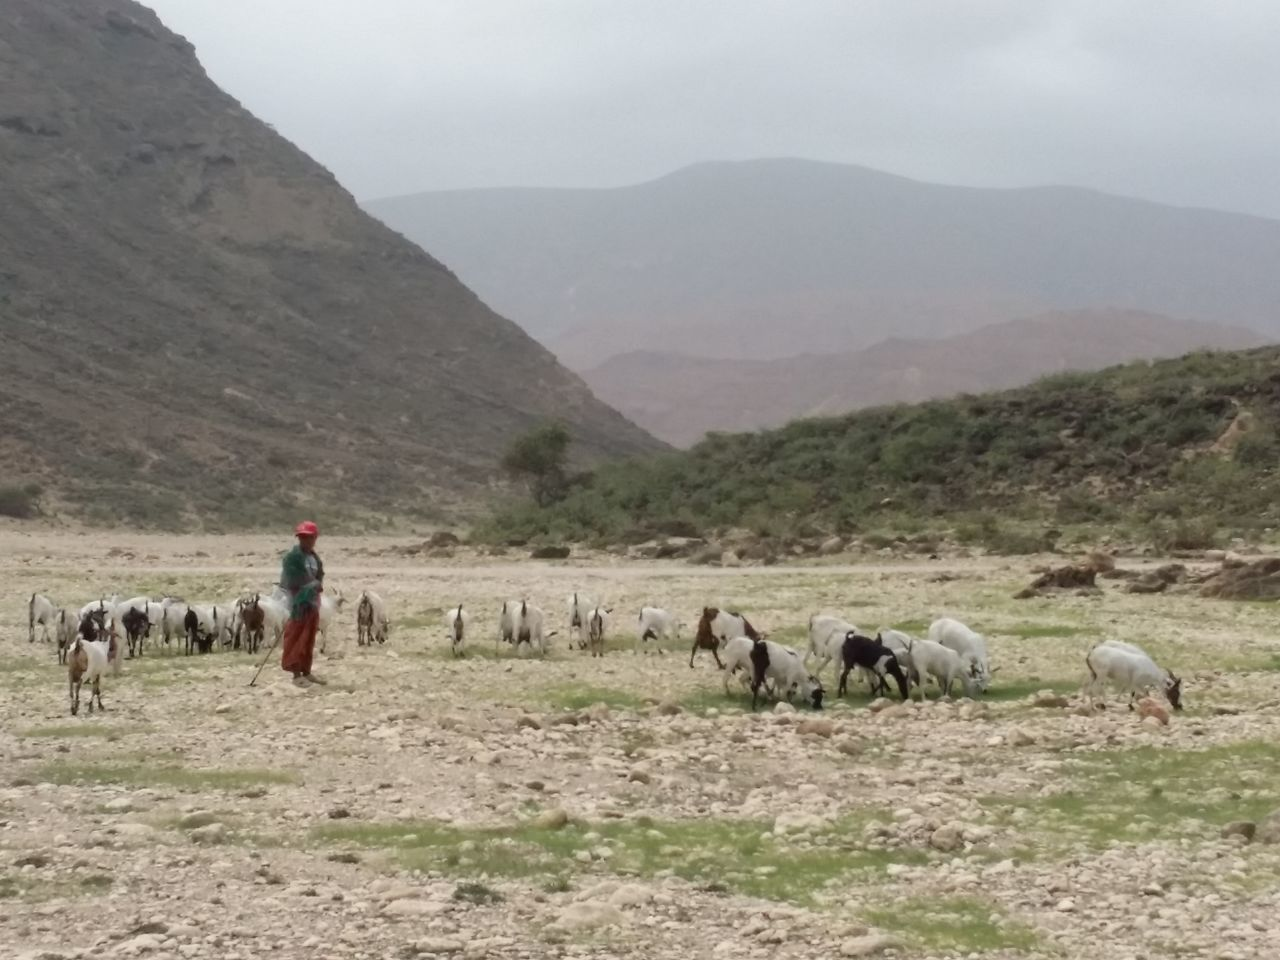 mountain, real people, livestock, domestic animals, men, agriculture, field, mammal, nature, outdoors, large group of animals, landscape, day, one person, women, farmer, rural scene, mountain range, standing, full length, scenics, sky, occupation, beauty in nature, working, adult, people